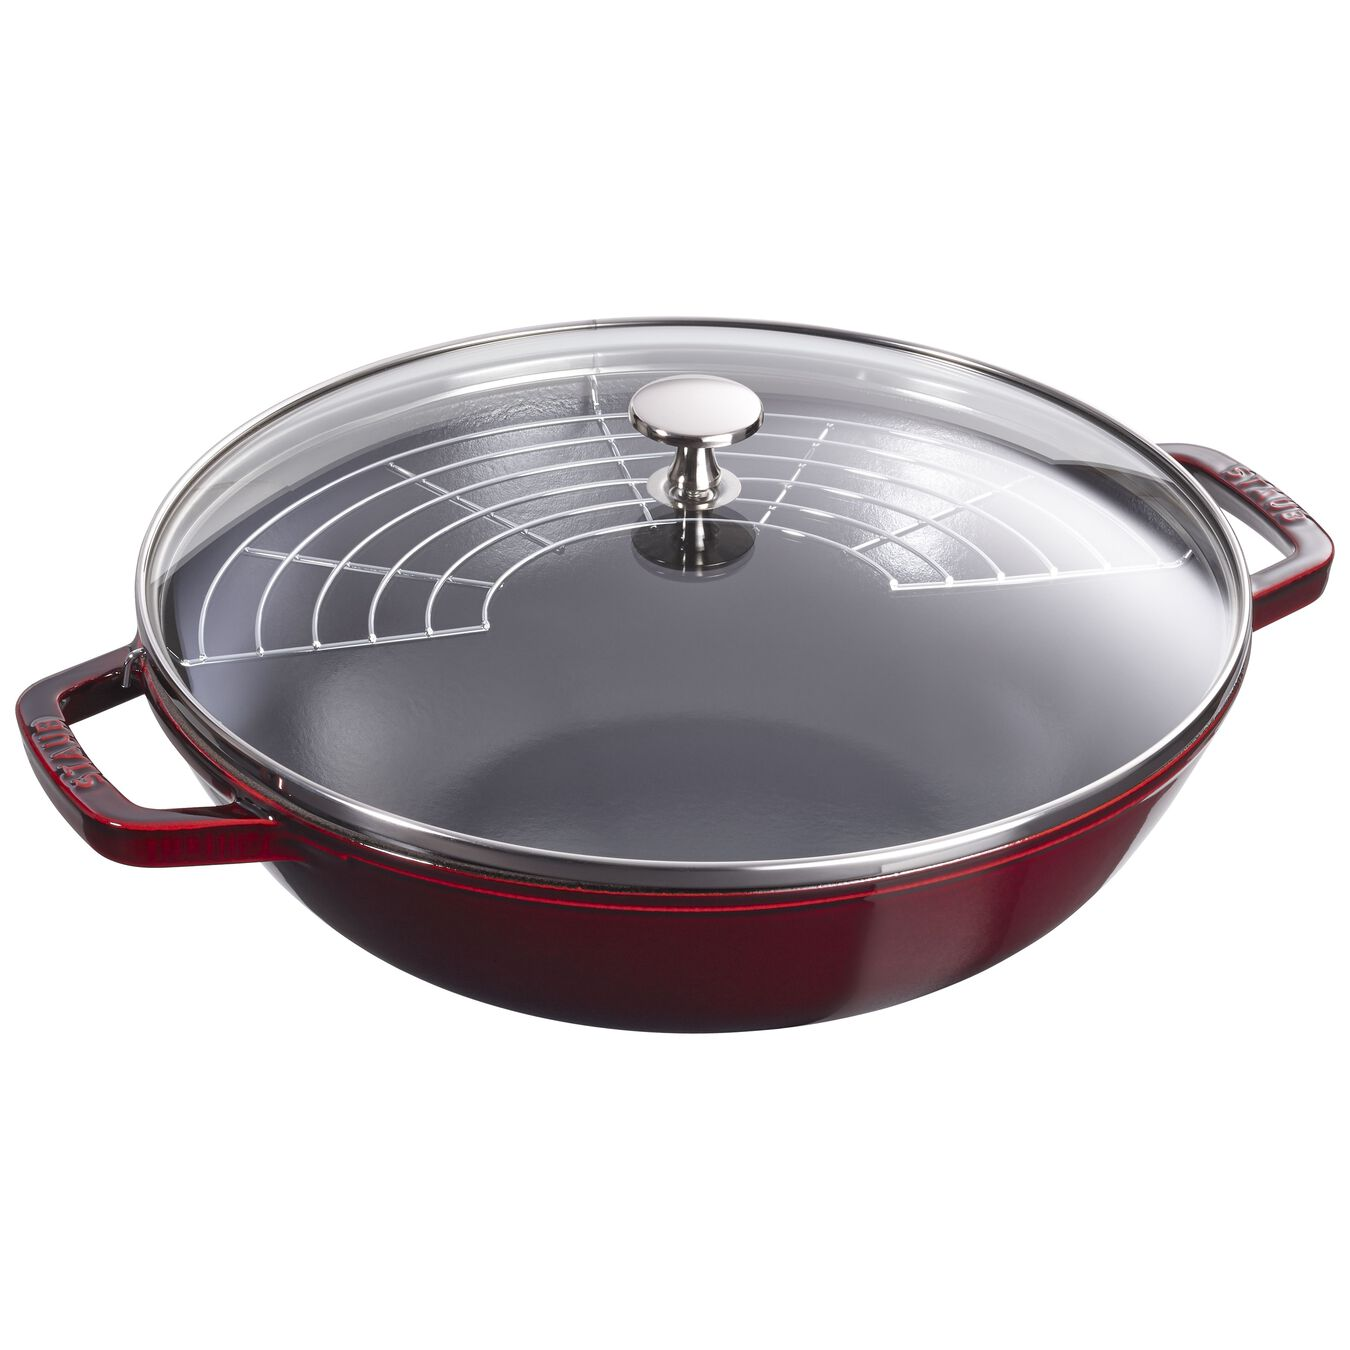 30 cm Cast iron Wok with glass lid, Grenadine-Red,,large 5